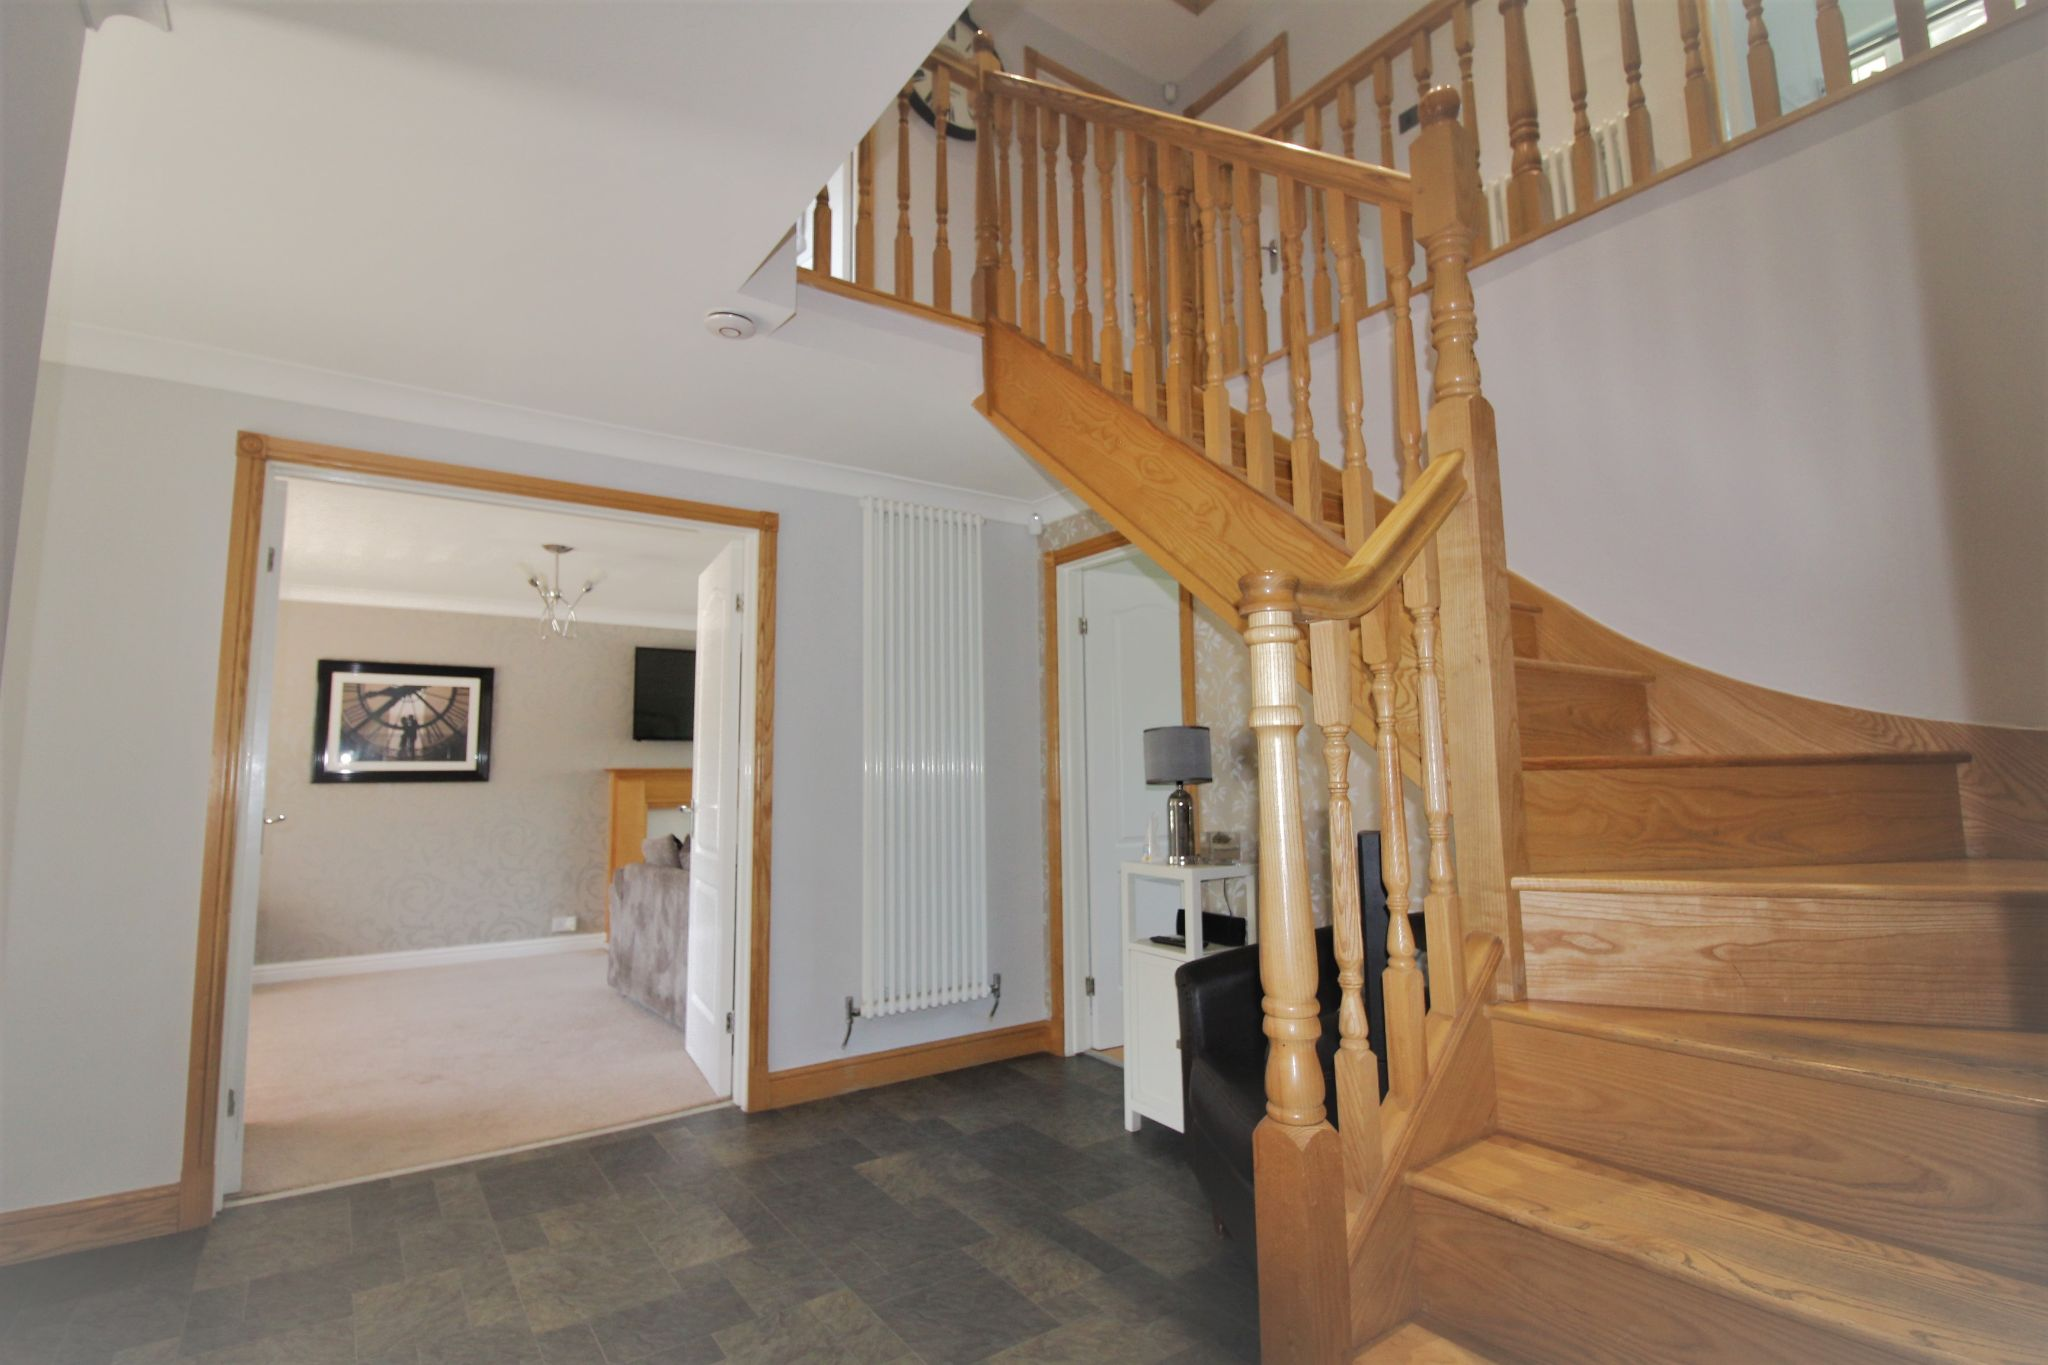 6 bedroom detached house For Sale in Solihull - Photograph 16.